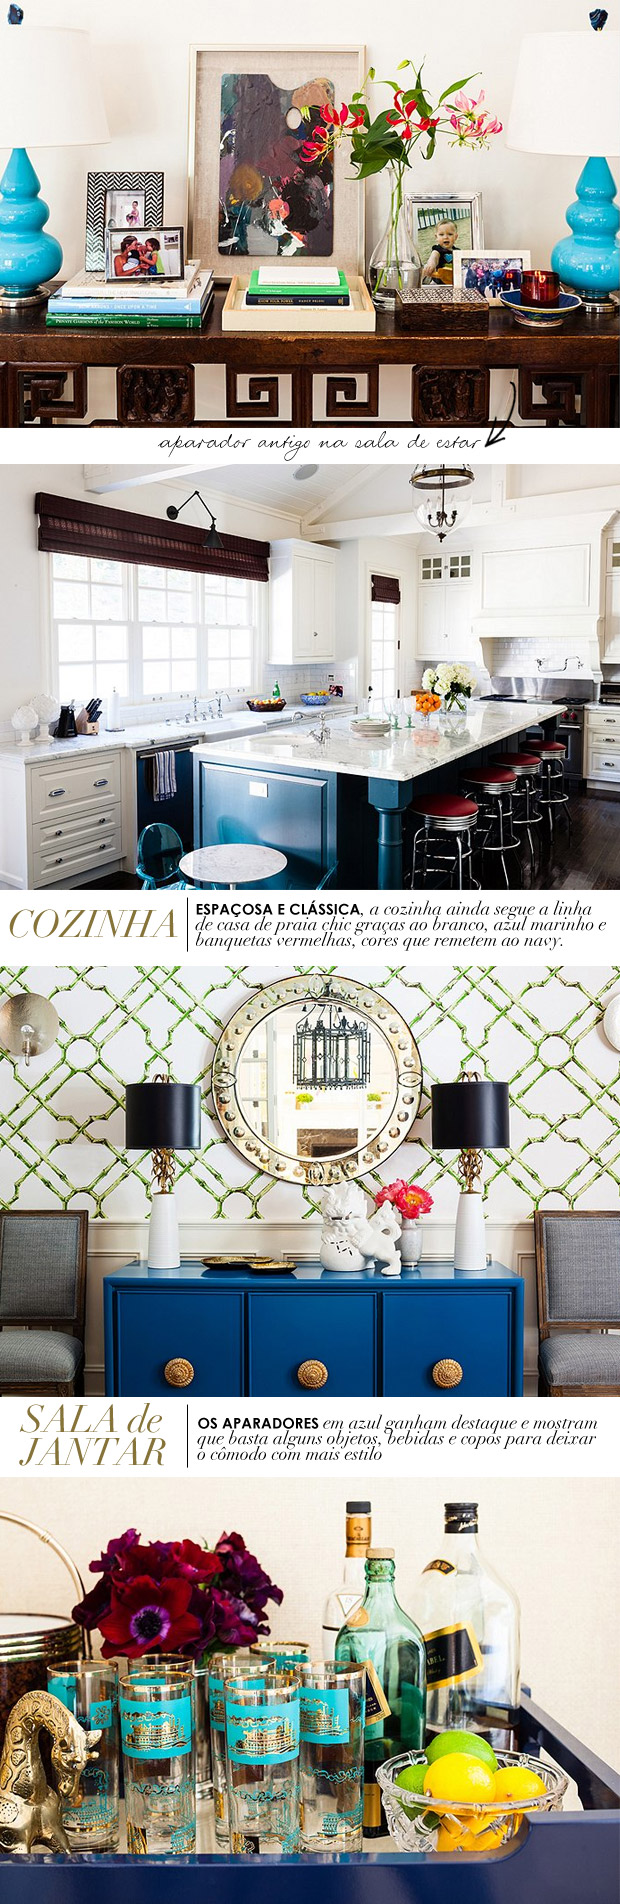 living-gazette-barbara-resende-decor-tour-casual-sofisticado-cozinha